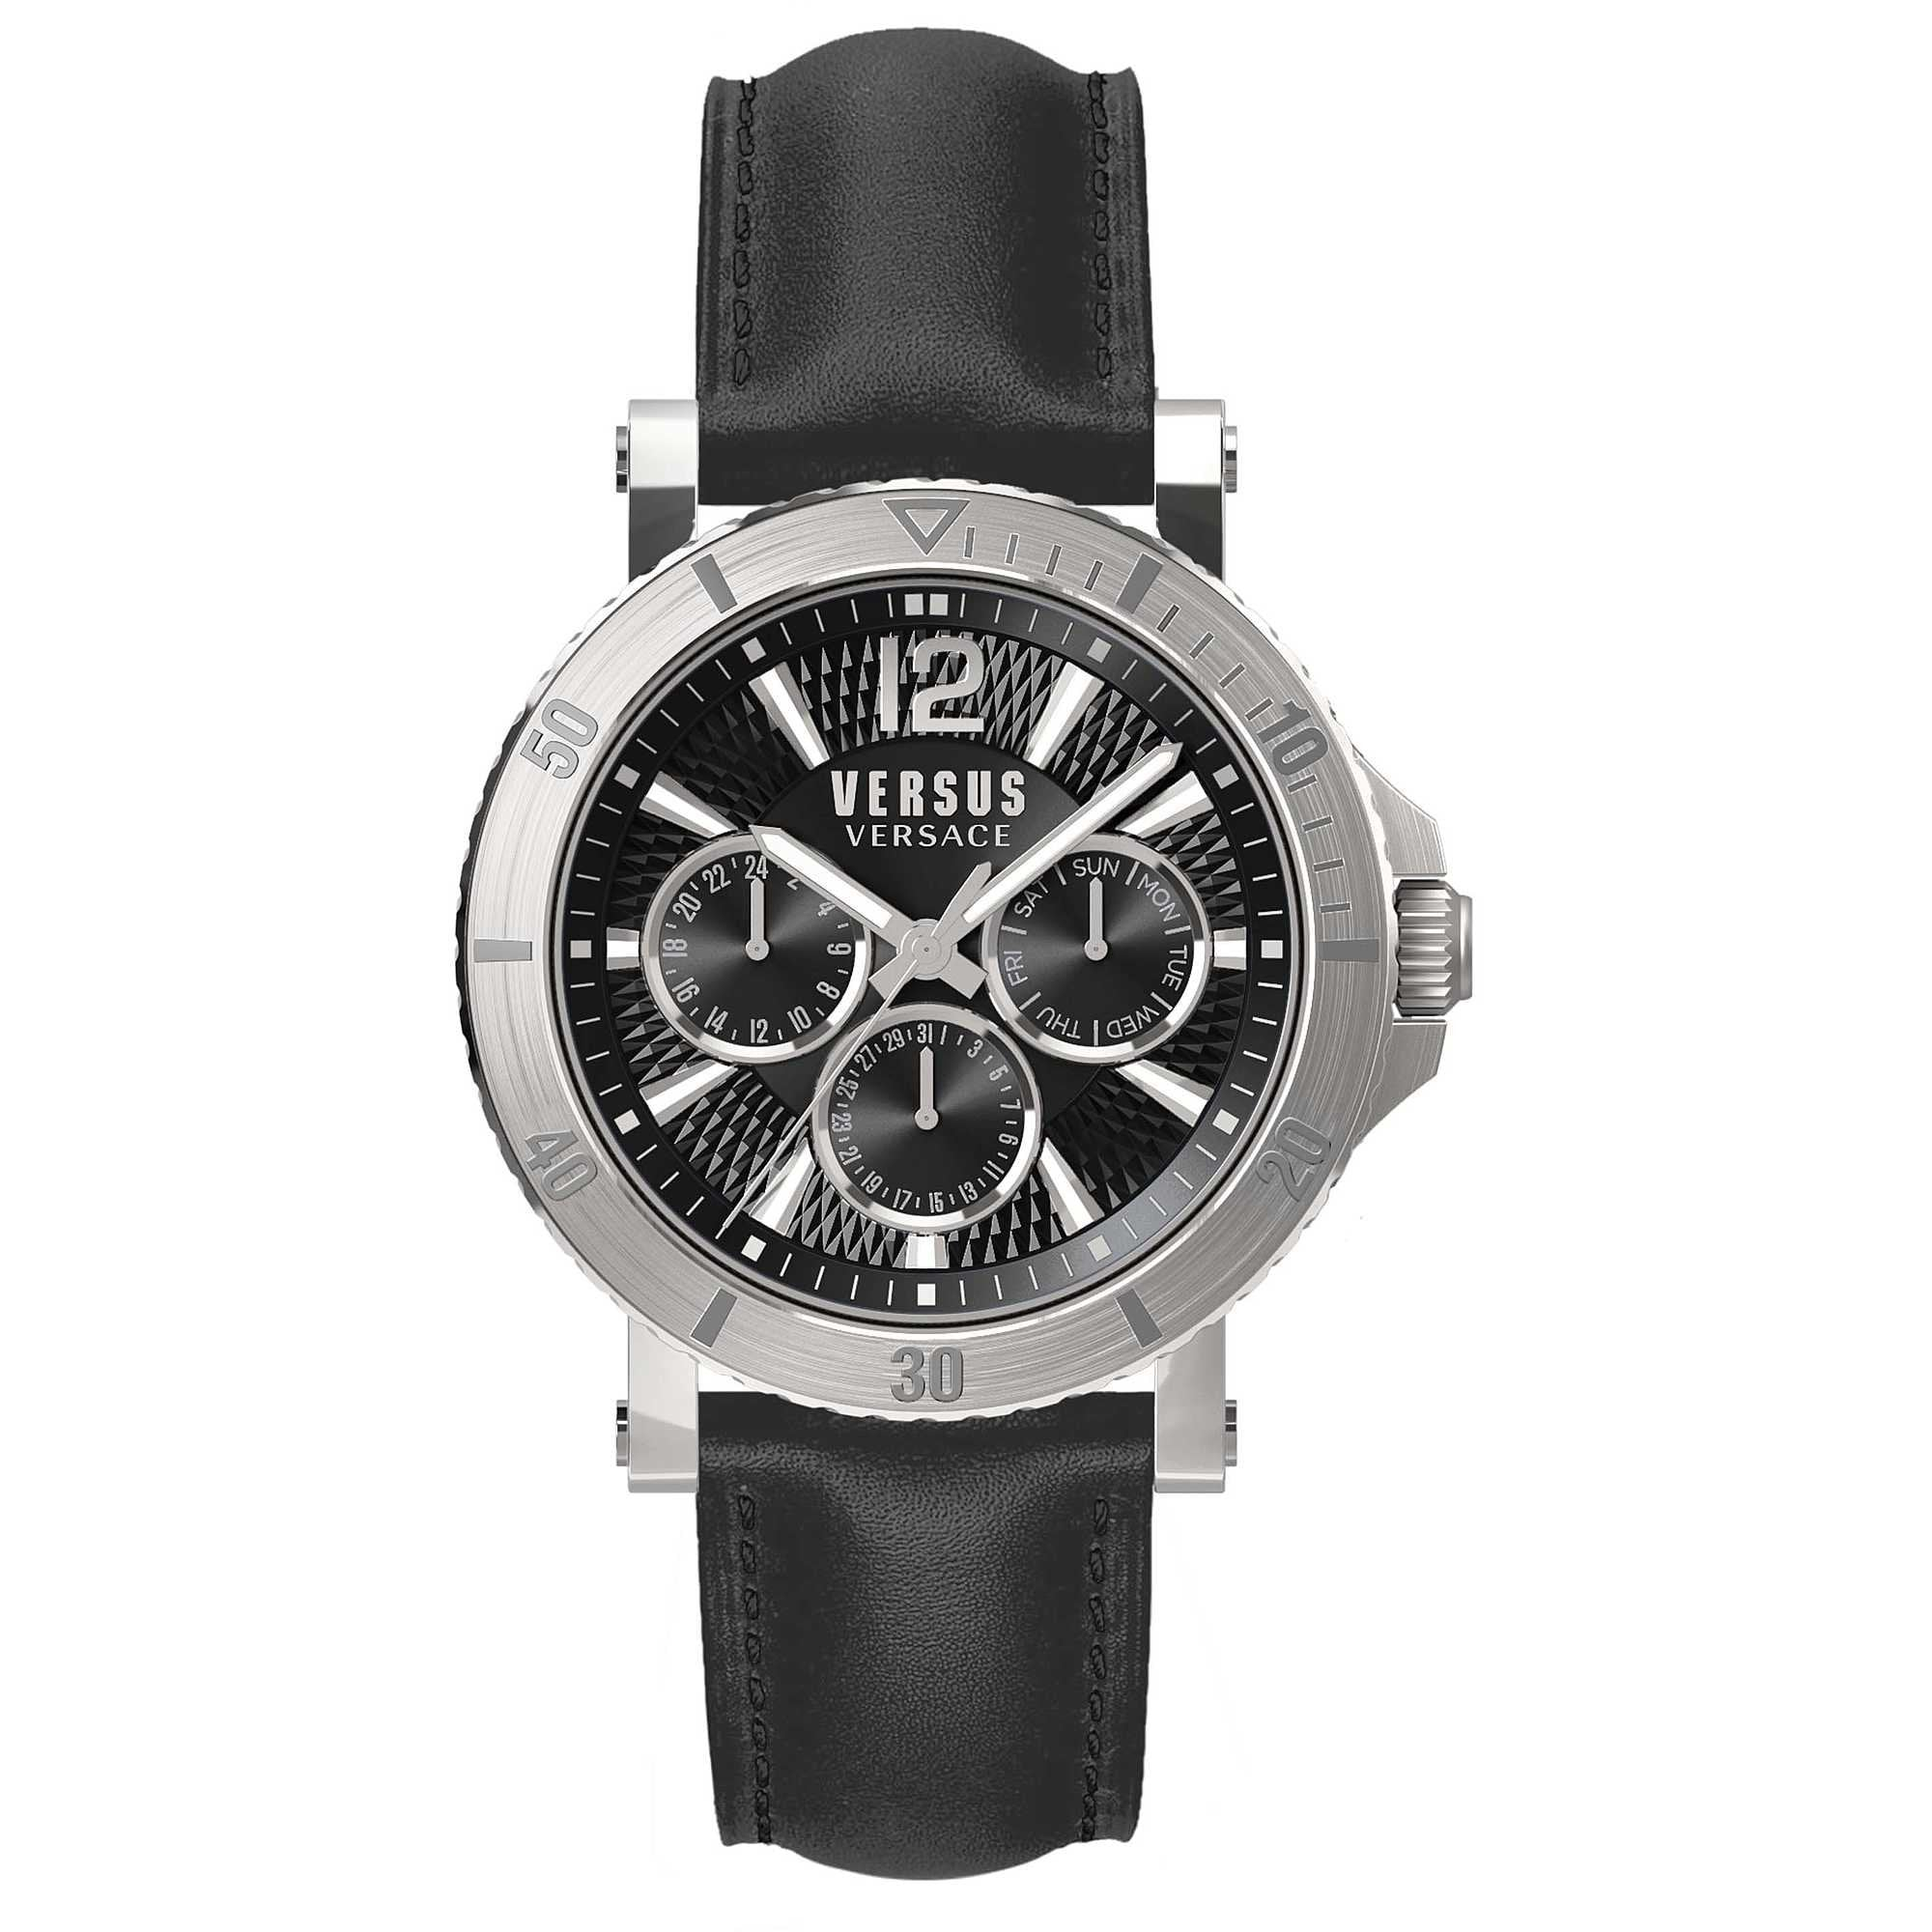 Versus Versace Steenberg Day & Date Black - Watches & Crystals